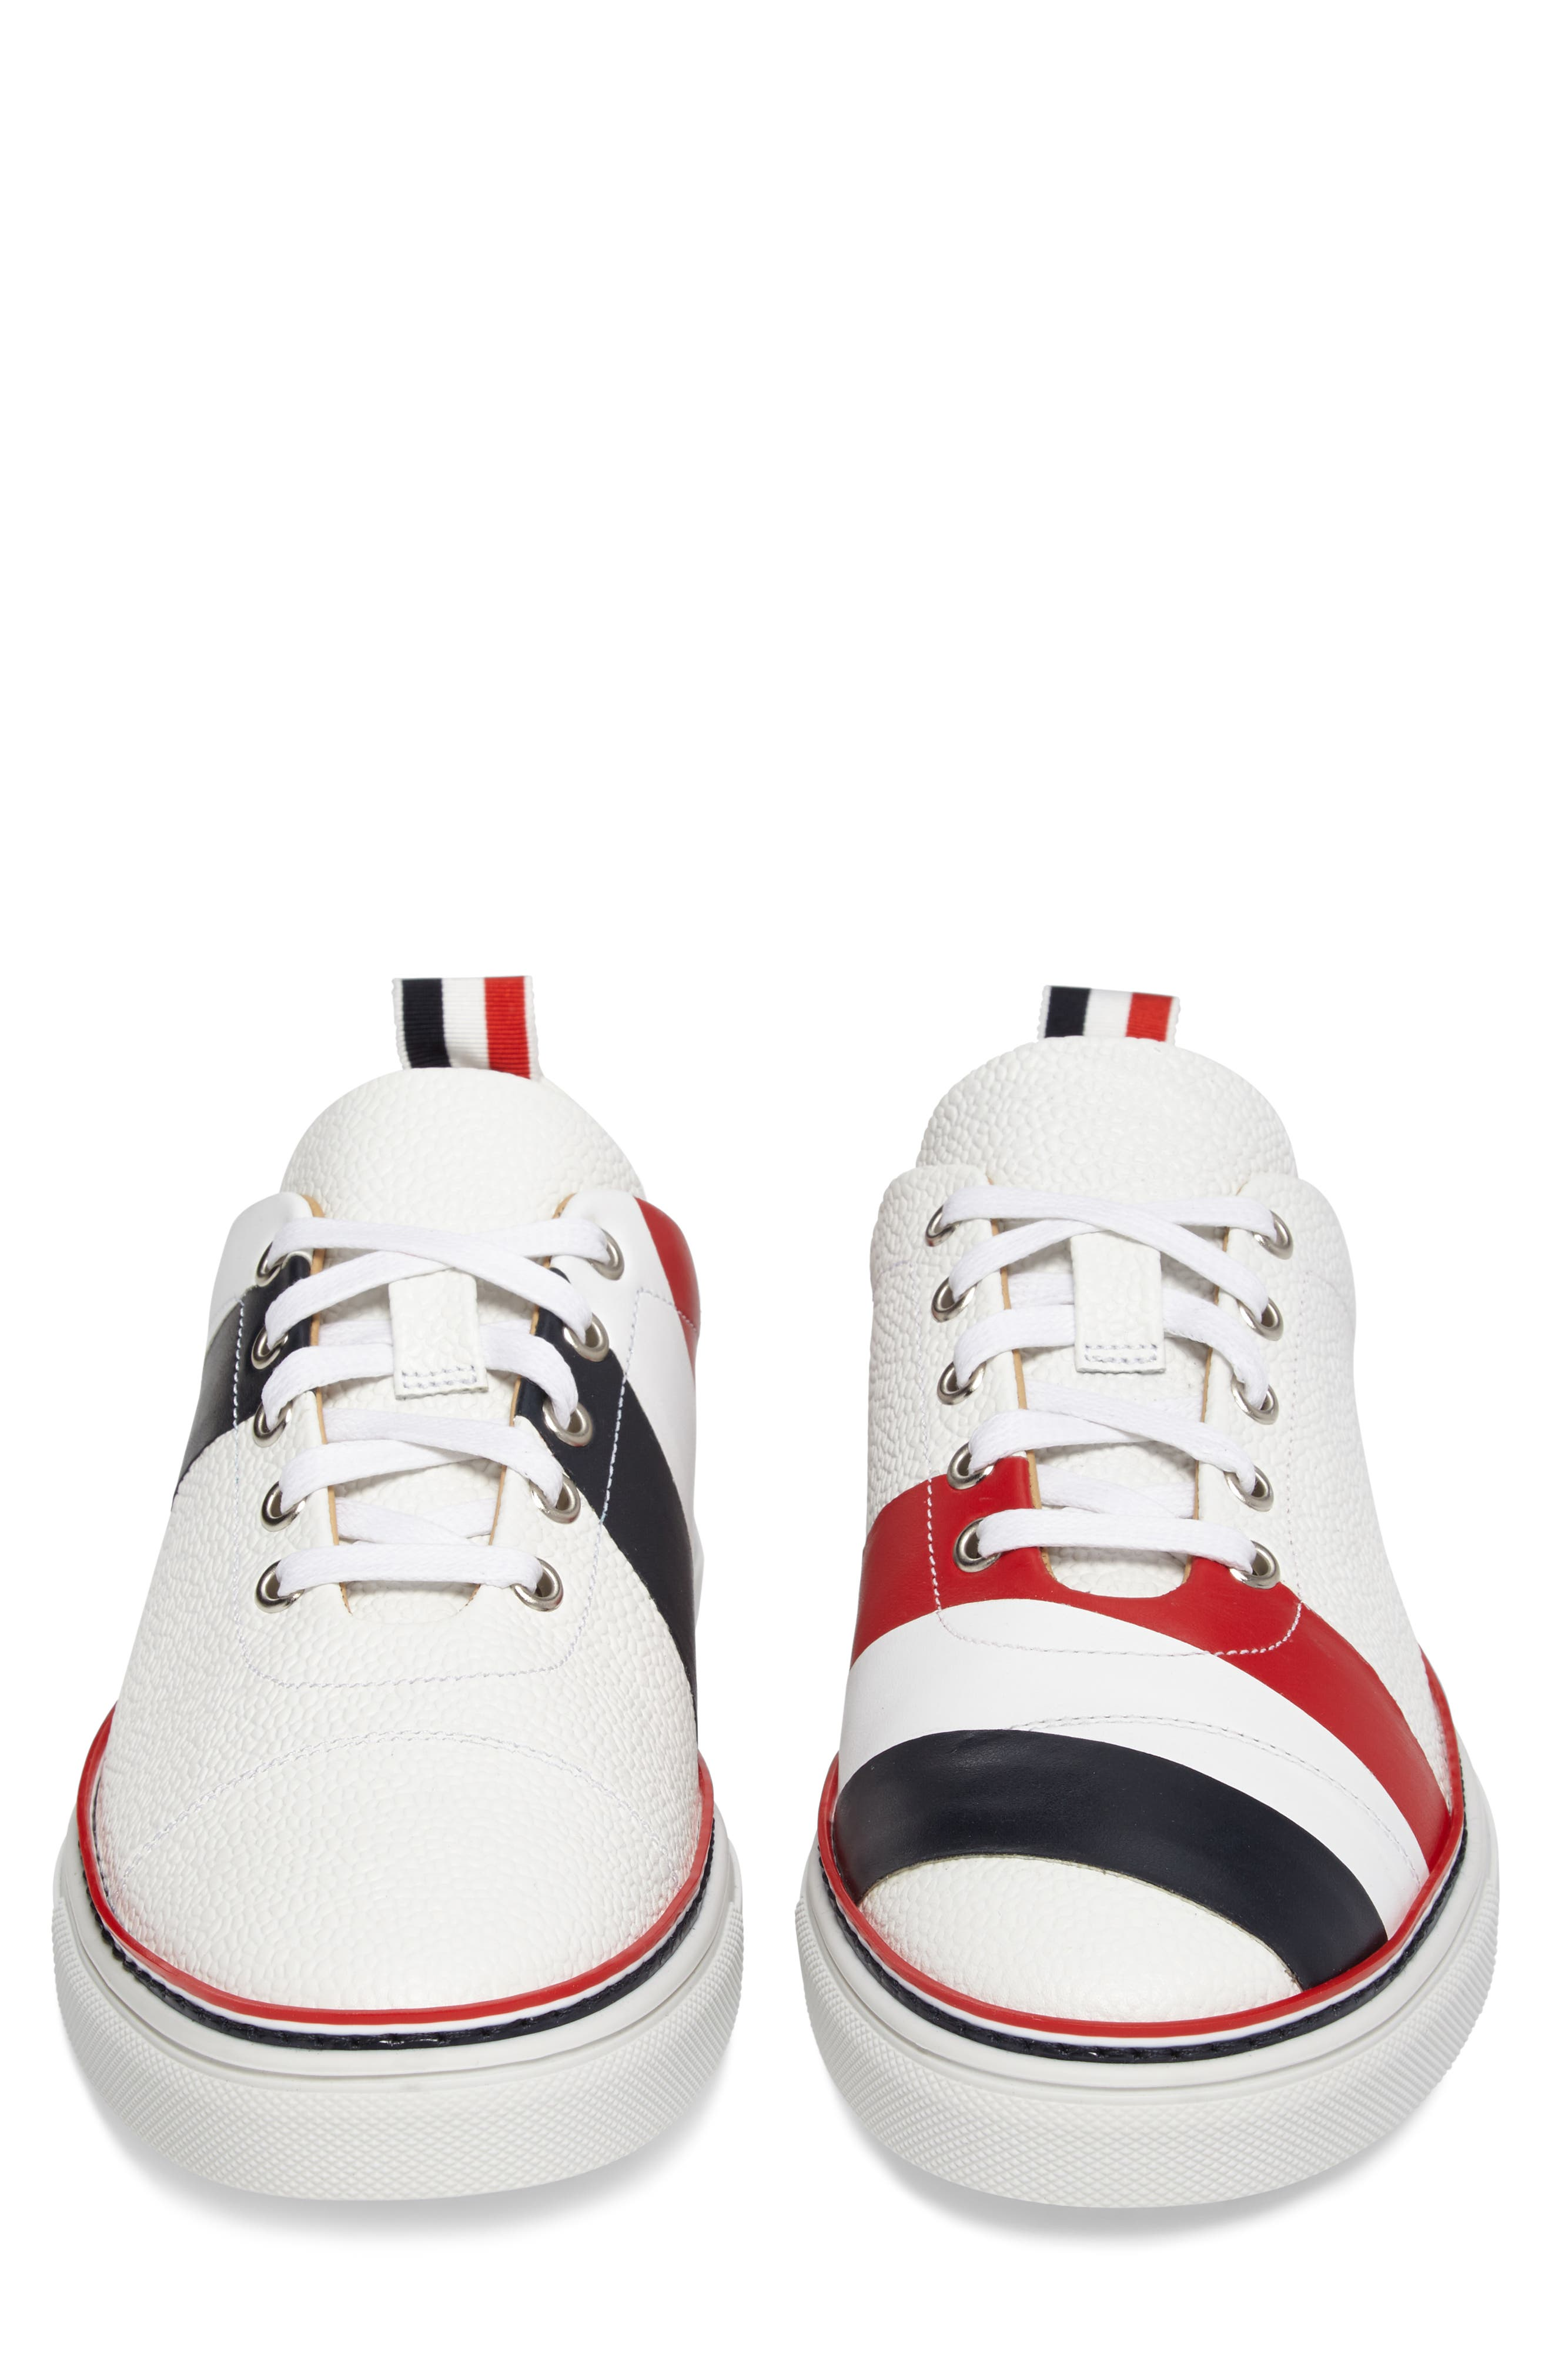 Asymmetrical Stripe Sneaker,                             Alternate thumbnail 4, color,                             100 White